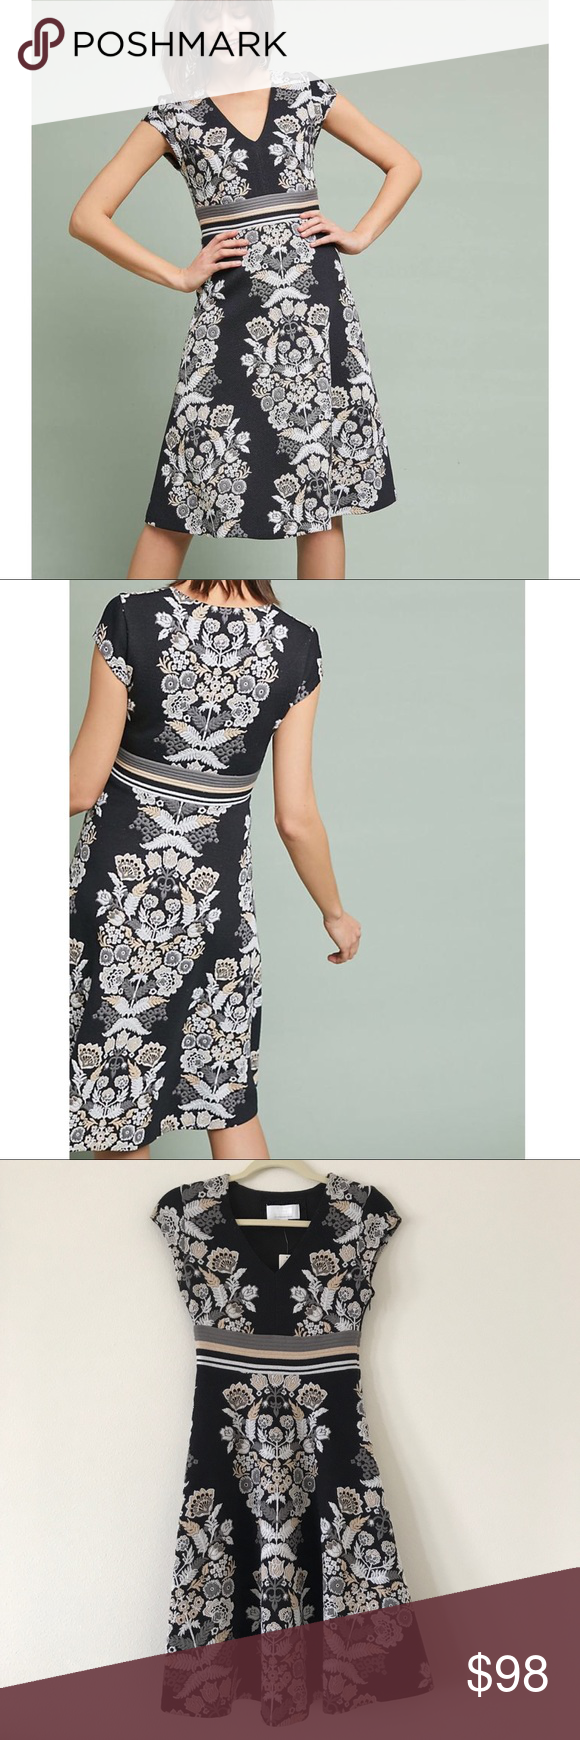 54b6c13ab271 Anthropologie Dress Soiree Embroidered Dress by Anthro brand ett:twa Thick  textured material with beautiful